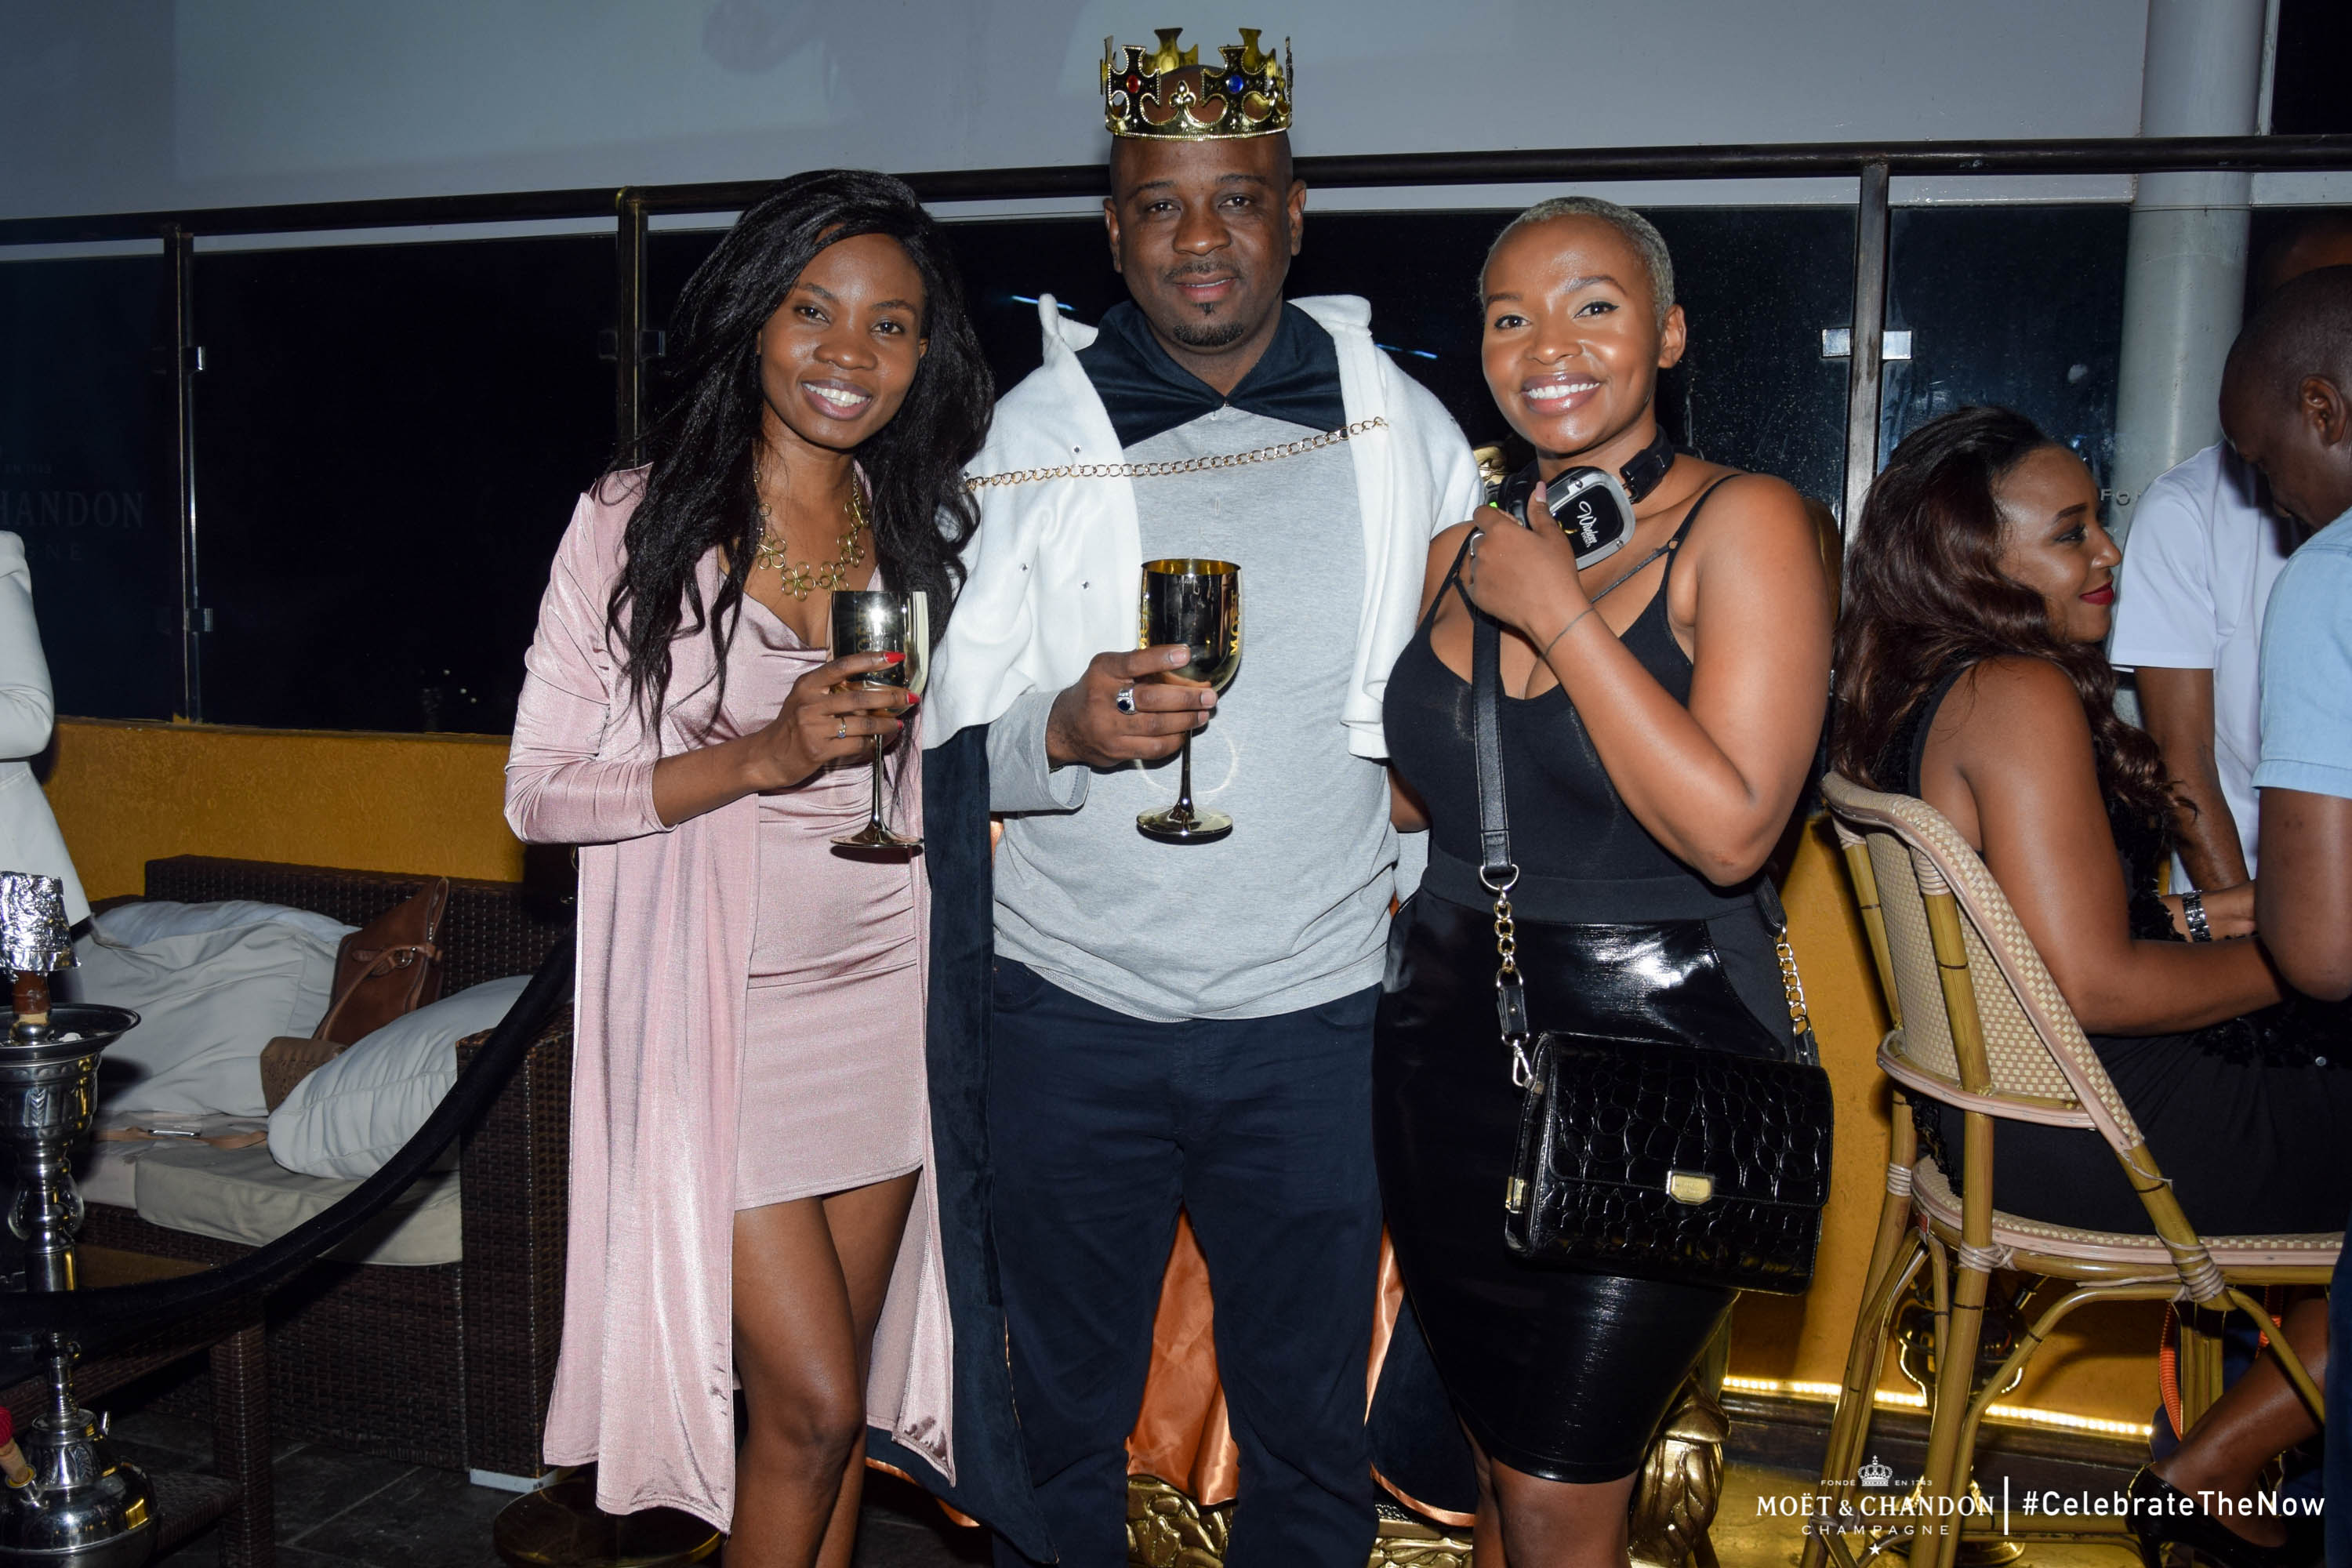 Celebrate the now Ali Oumarou crowned as the first Moët King